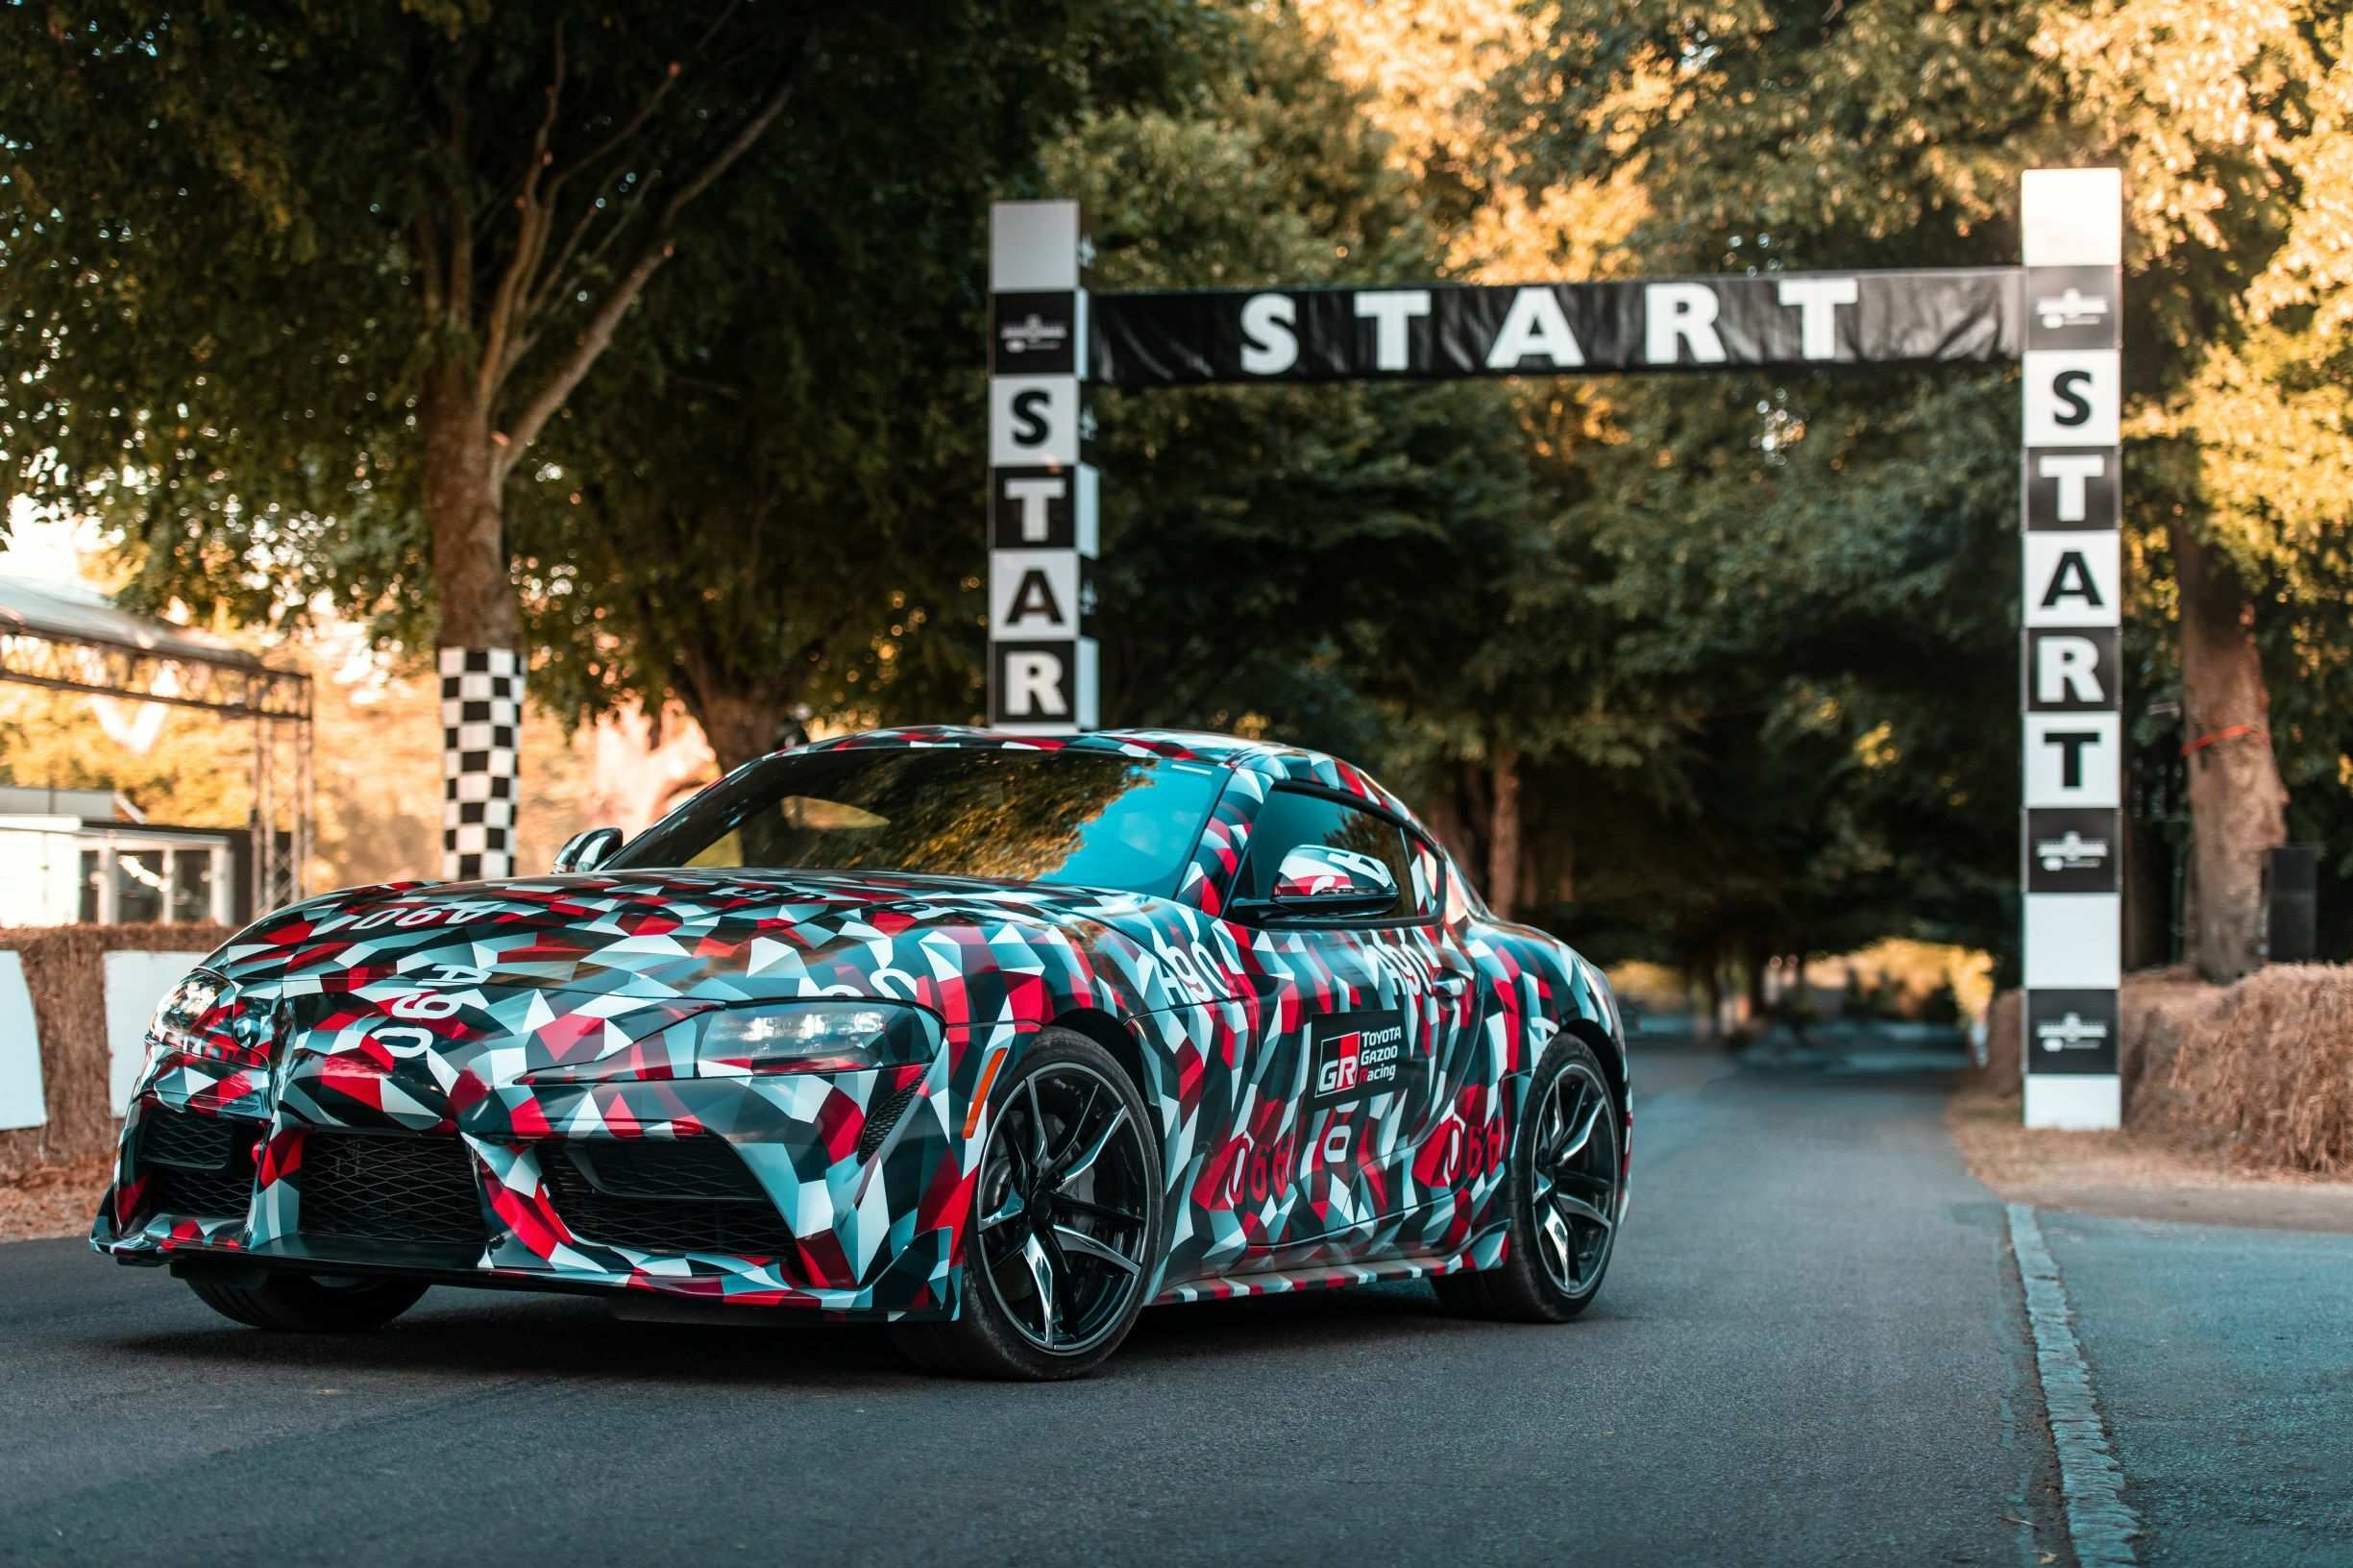 56 Best Review Who Bought The 2020 Toyota Supra At Barrett Jackson Release with Who Bought The 2020 Toyota Supra At Barrett Jackson